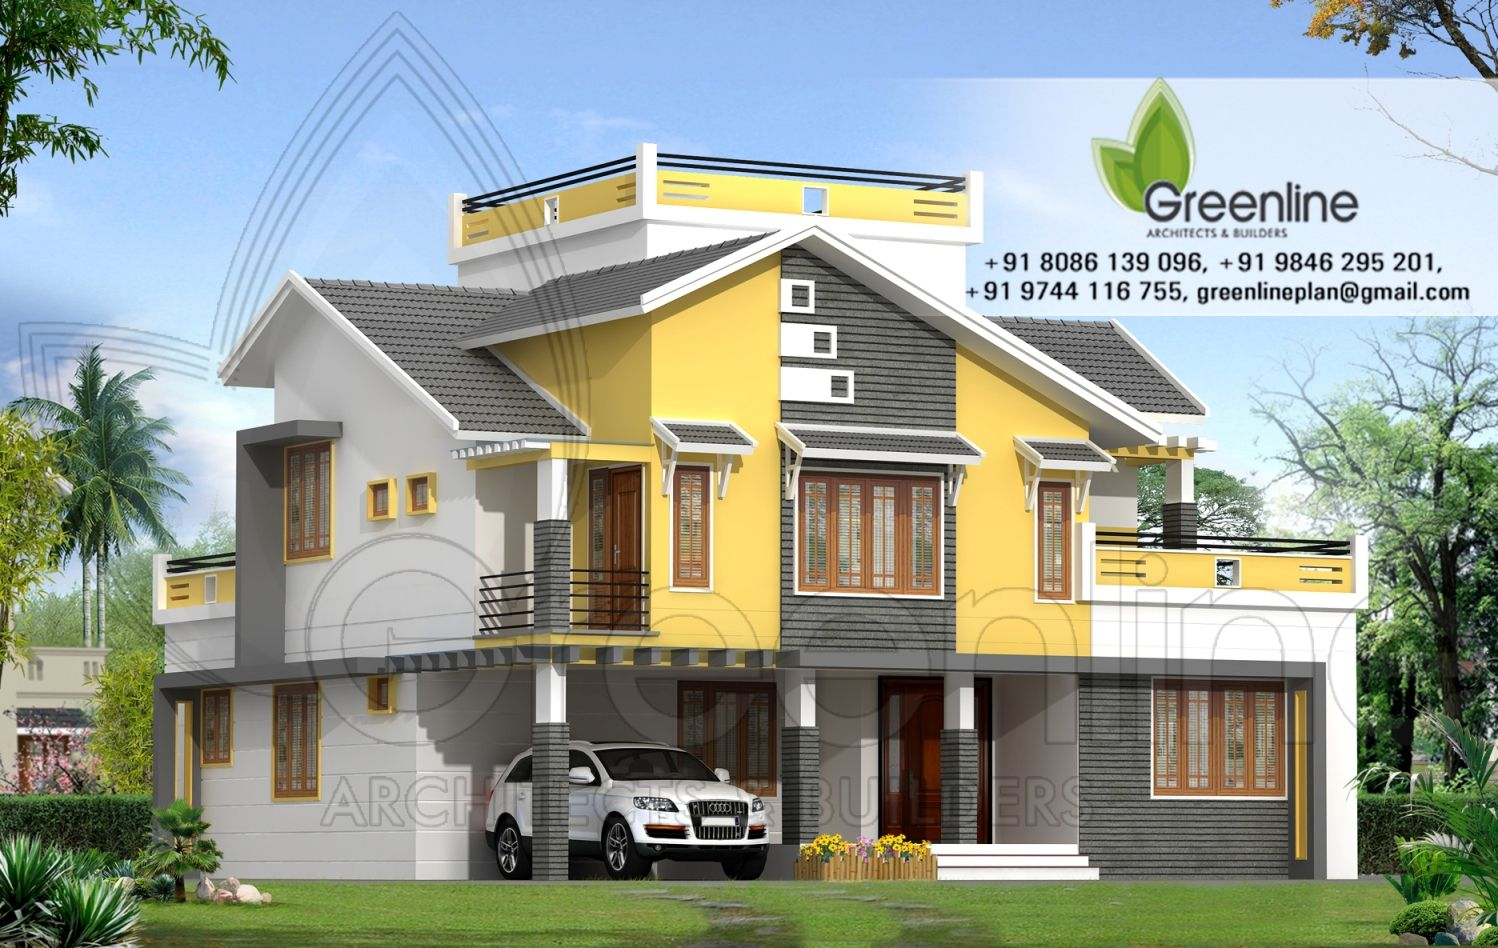 2550 sq ft contemporary duplex home design from greenline architects ...